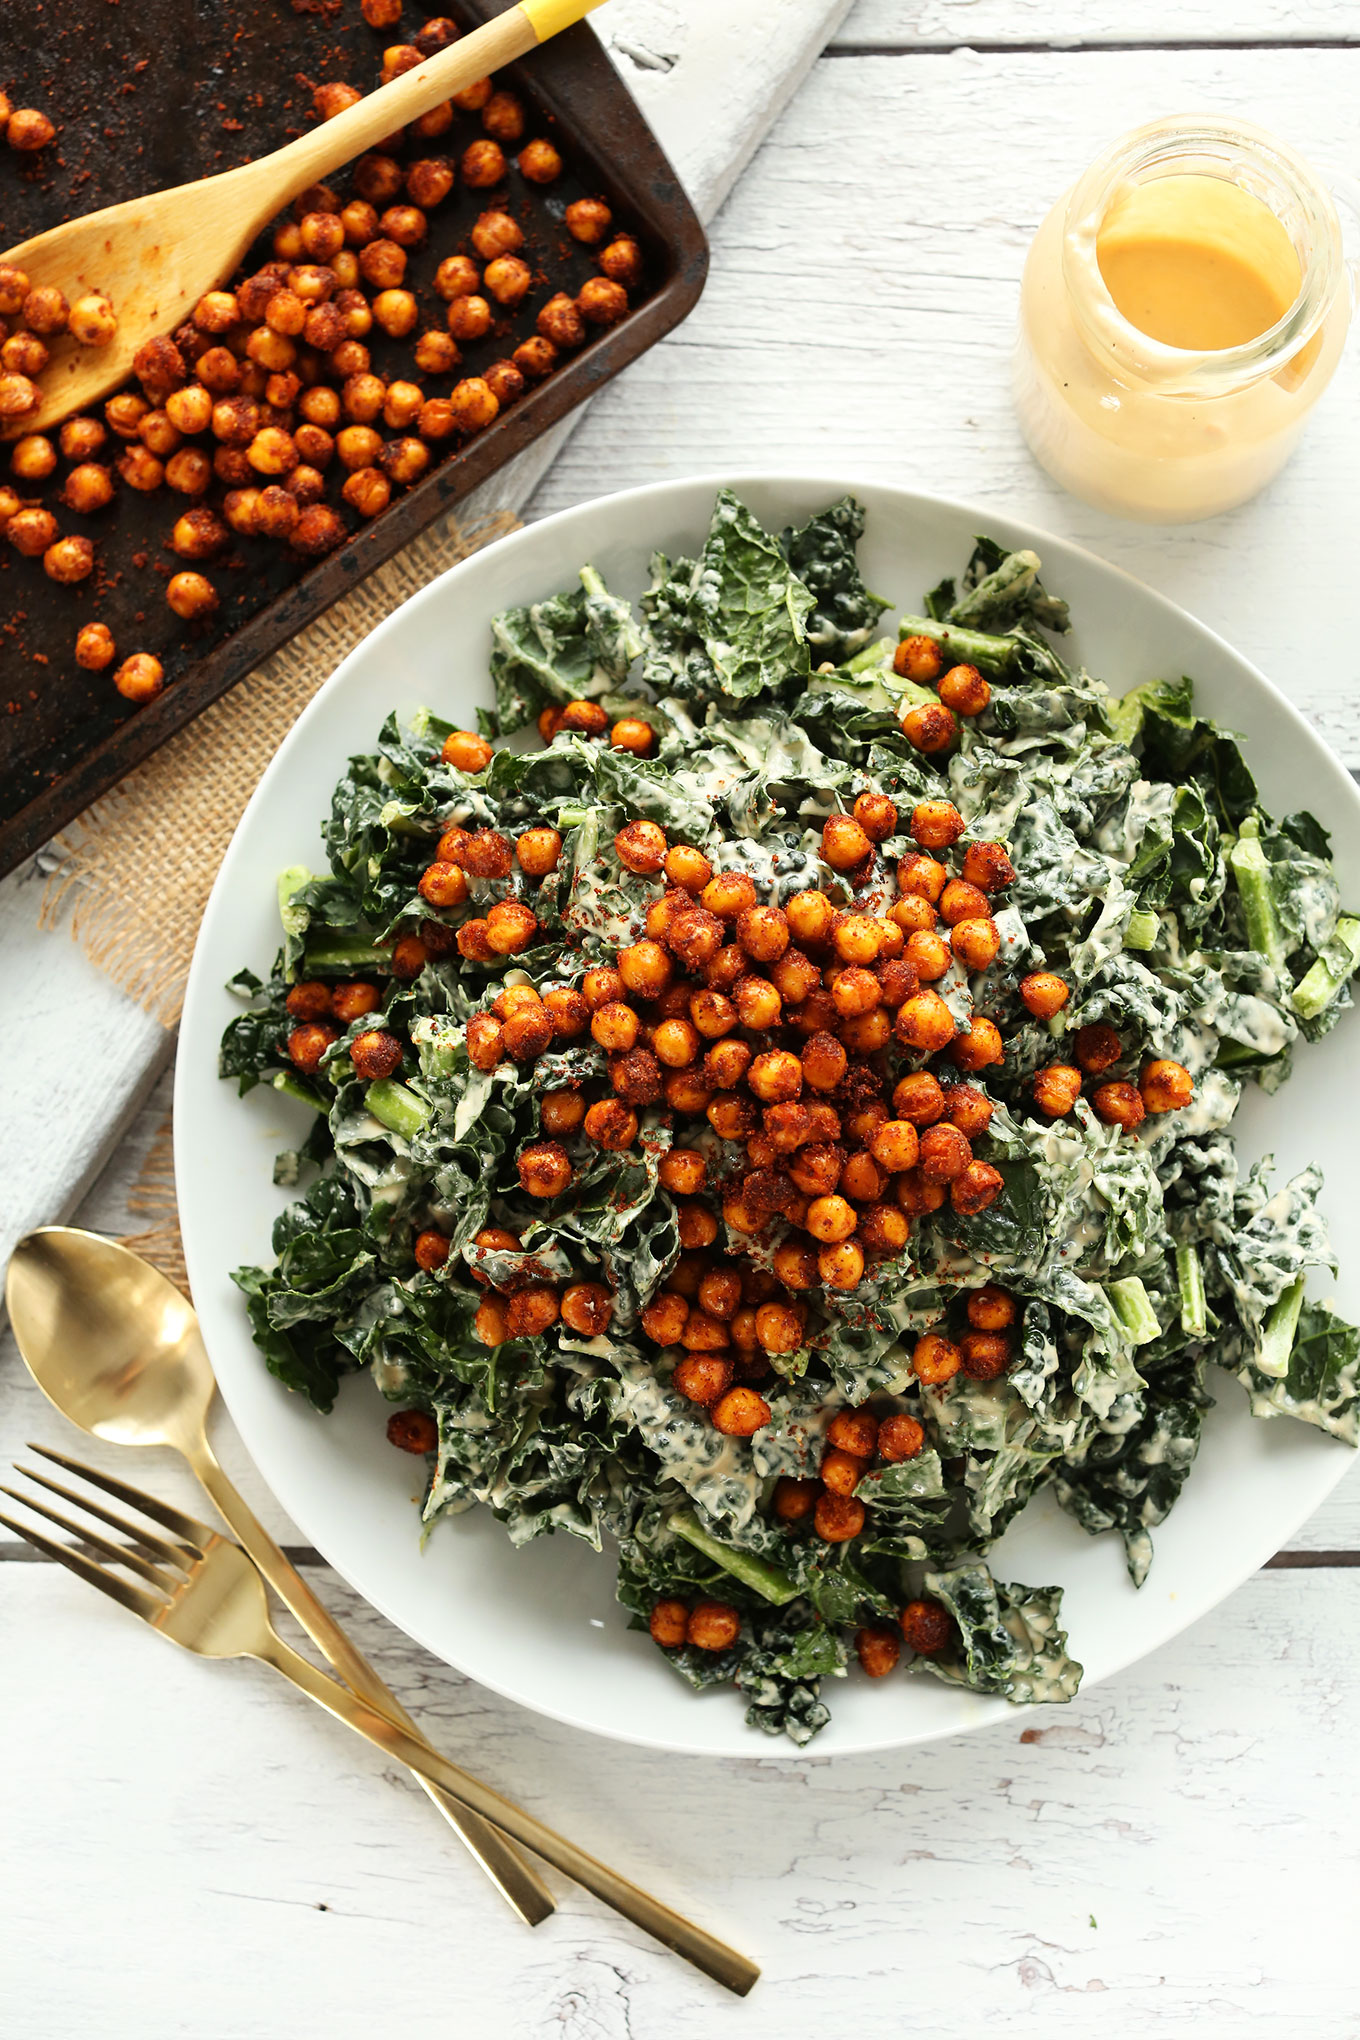 Dinner plate filled with our quick vegan Garlicky Kale Salad with Tandoori Spiced Chickpeas